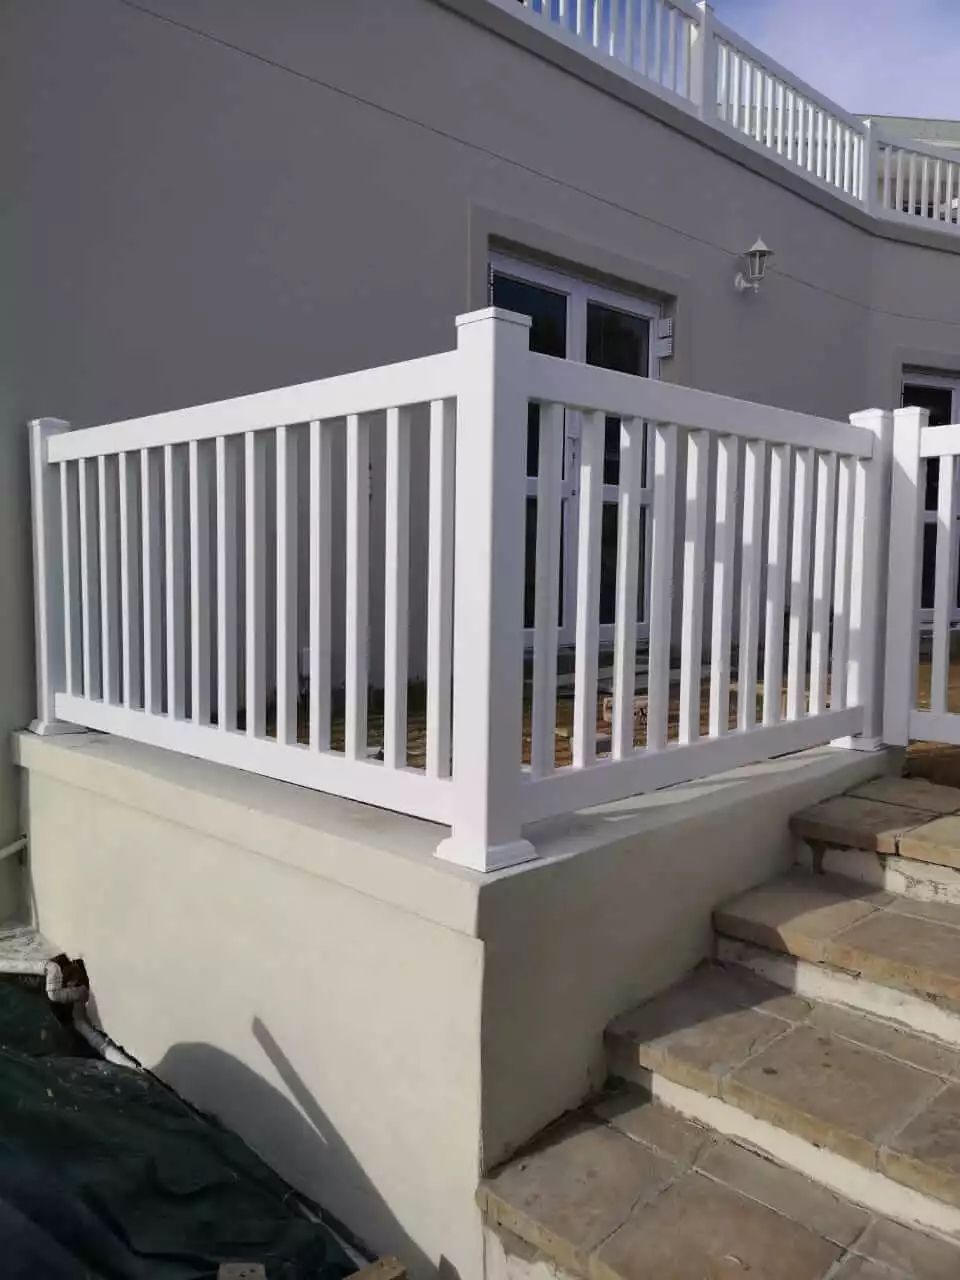 Pvc Balustrade Fencing Absolut Fencing   Pvc Balustrades And Handrails   Stair Railing   Hospital Corridor   Cable Railing Systems   Balcony Railing   Nsto